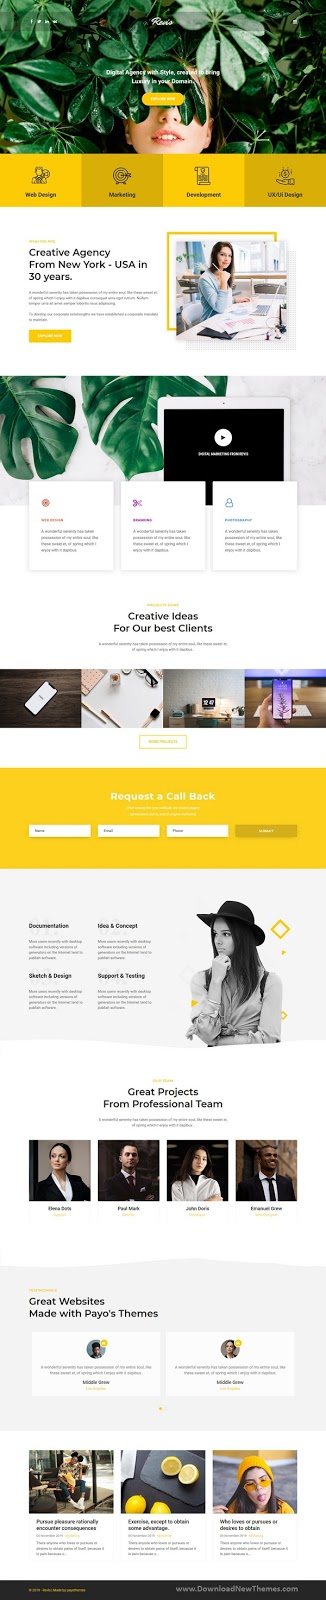 Digital Agency & Marketing Joomla Template